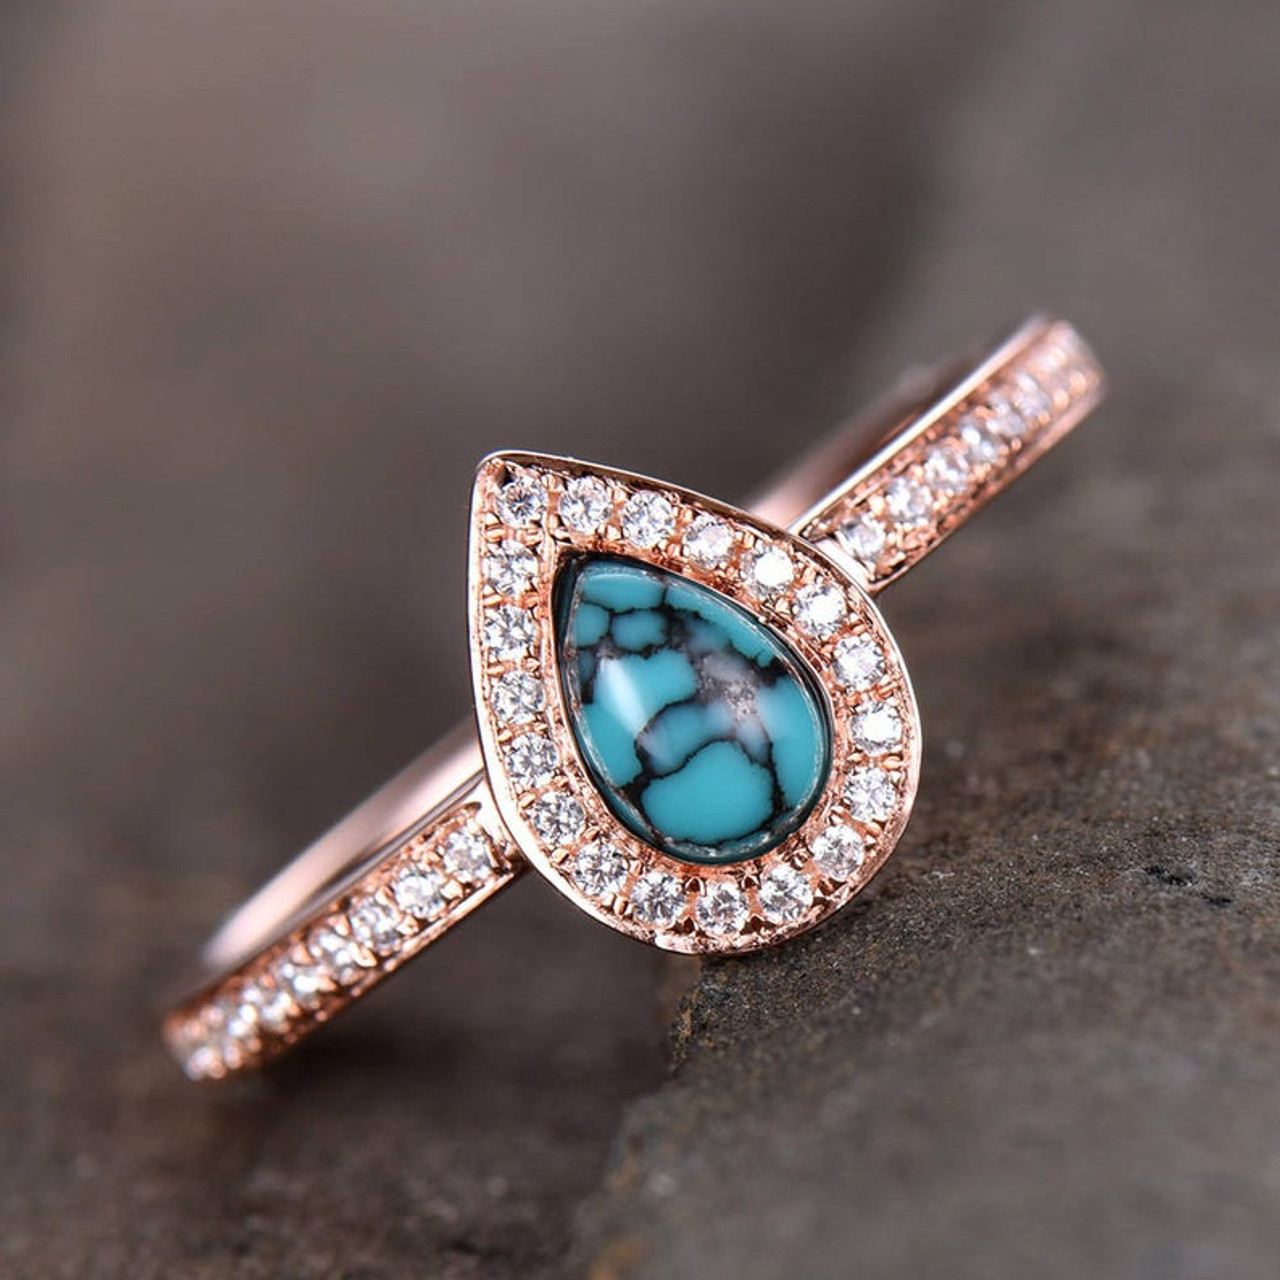 Thin Gold Ring Turquoise Engagement Ring Gold Turquoise Ring 14k Solid Yellow Gold Ring A Size 6.5. Turquoise Gold Ring